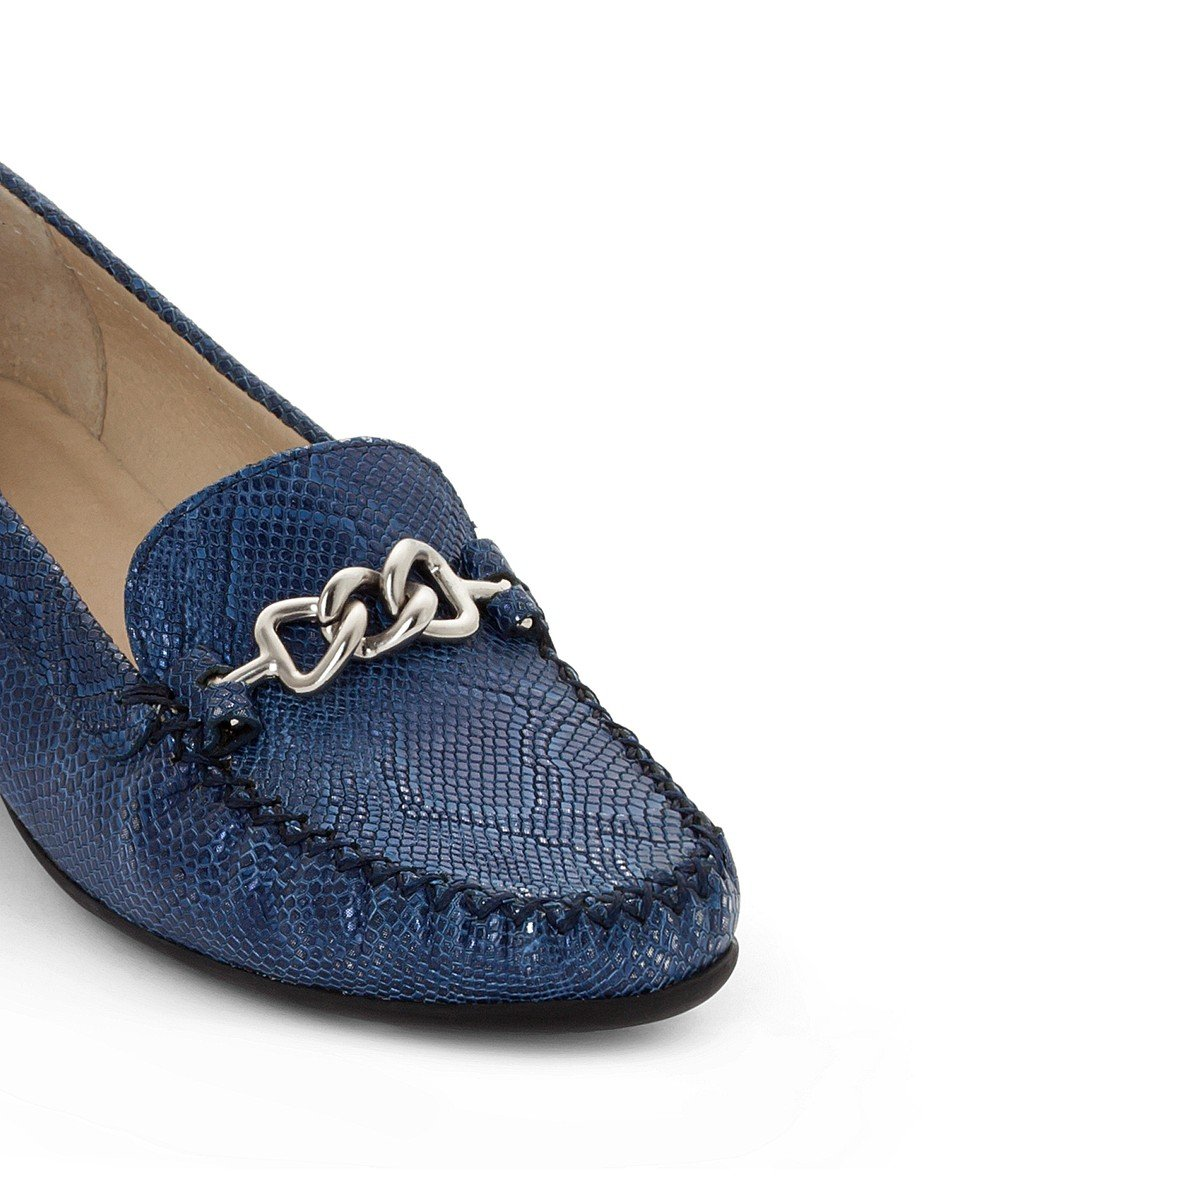 La Redoute Womens Snake Print Leather Wedge Loafers Blue Size 42 ANNE WEYBURN 6275015-000-1182789-00042-1